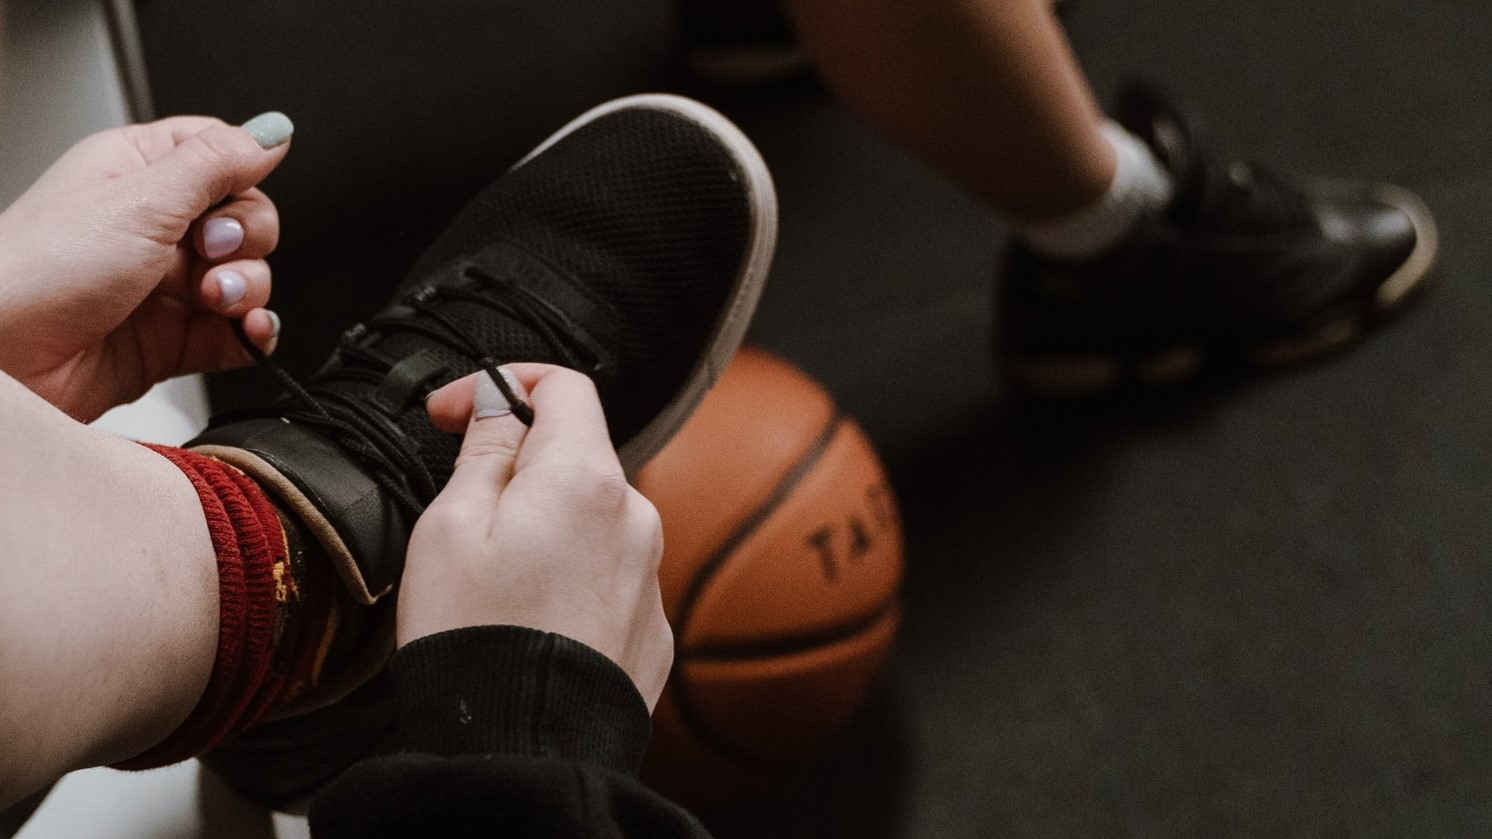 How To Prevent Blisters in Basketball: Fit 2